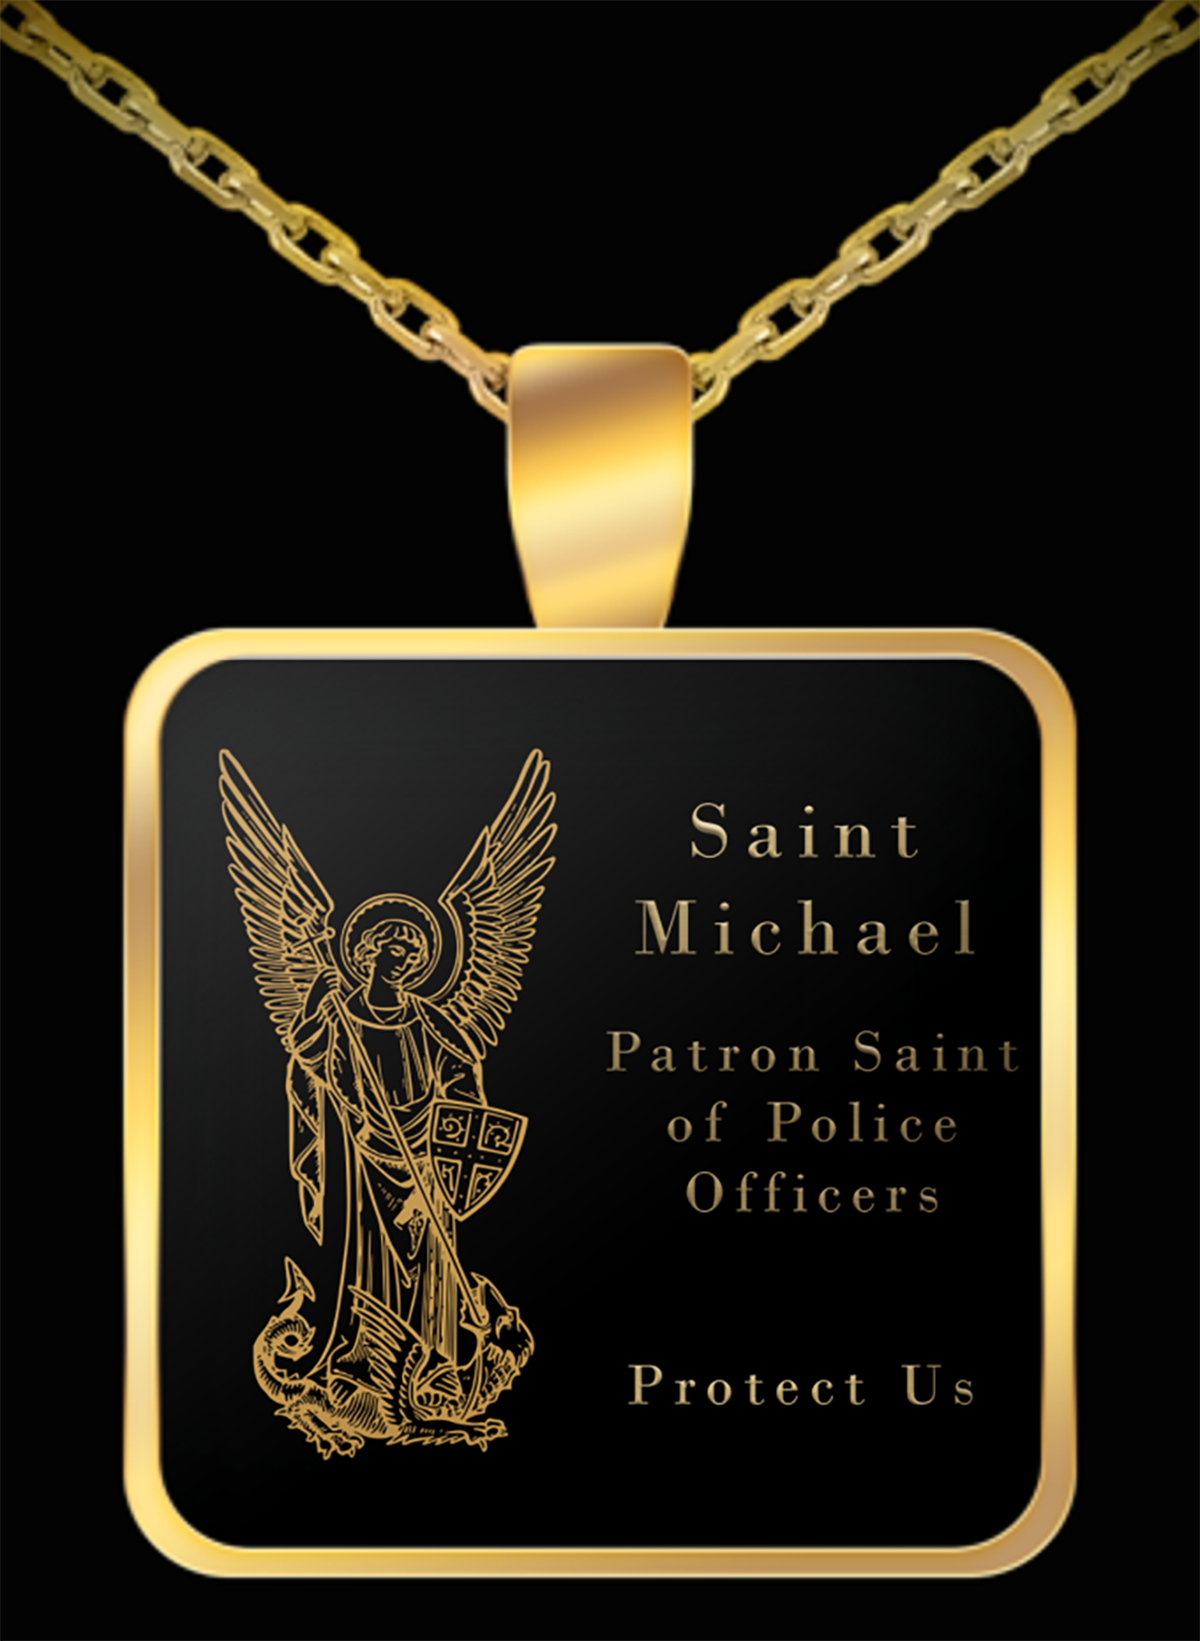 Saint Michael Patron Saint of Police Officers